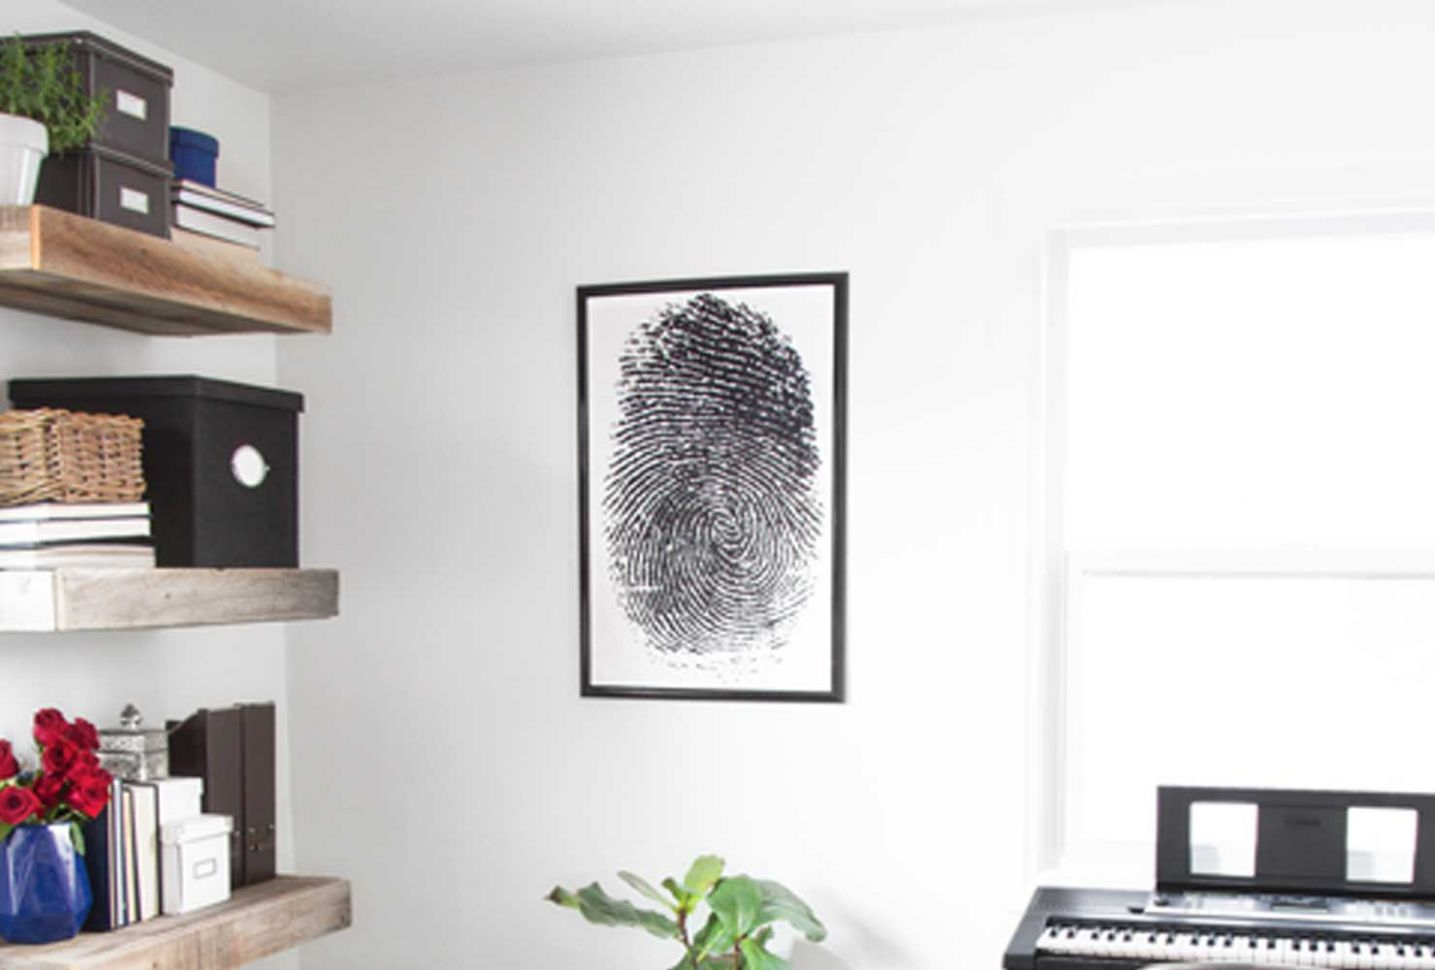 8 Office Wall Art Ideas For An Inspired Workspace | Shutterfly - home office artwork ideas